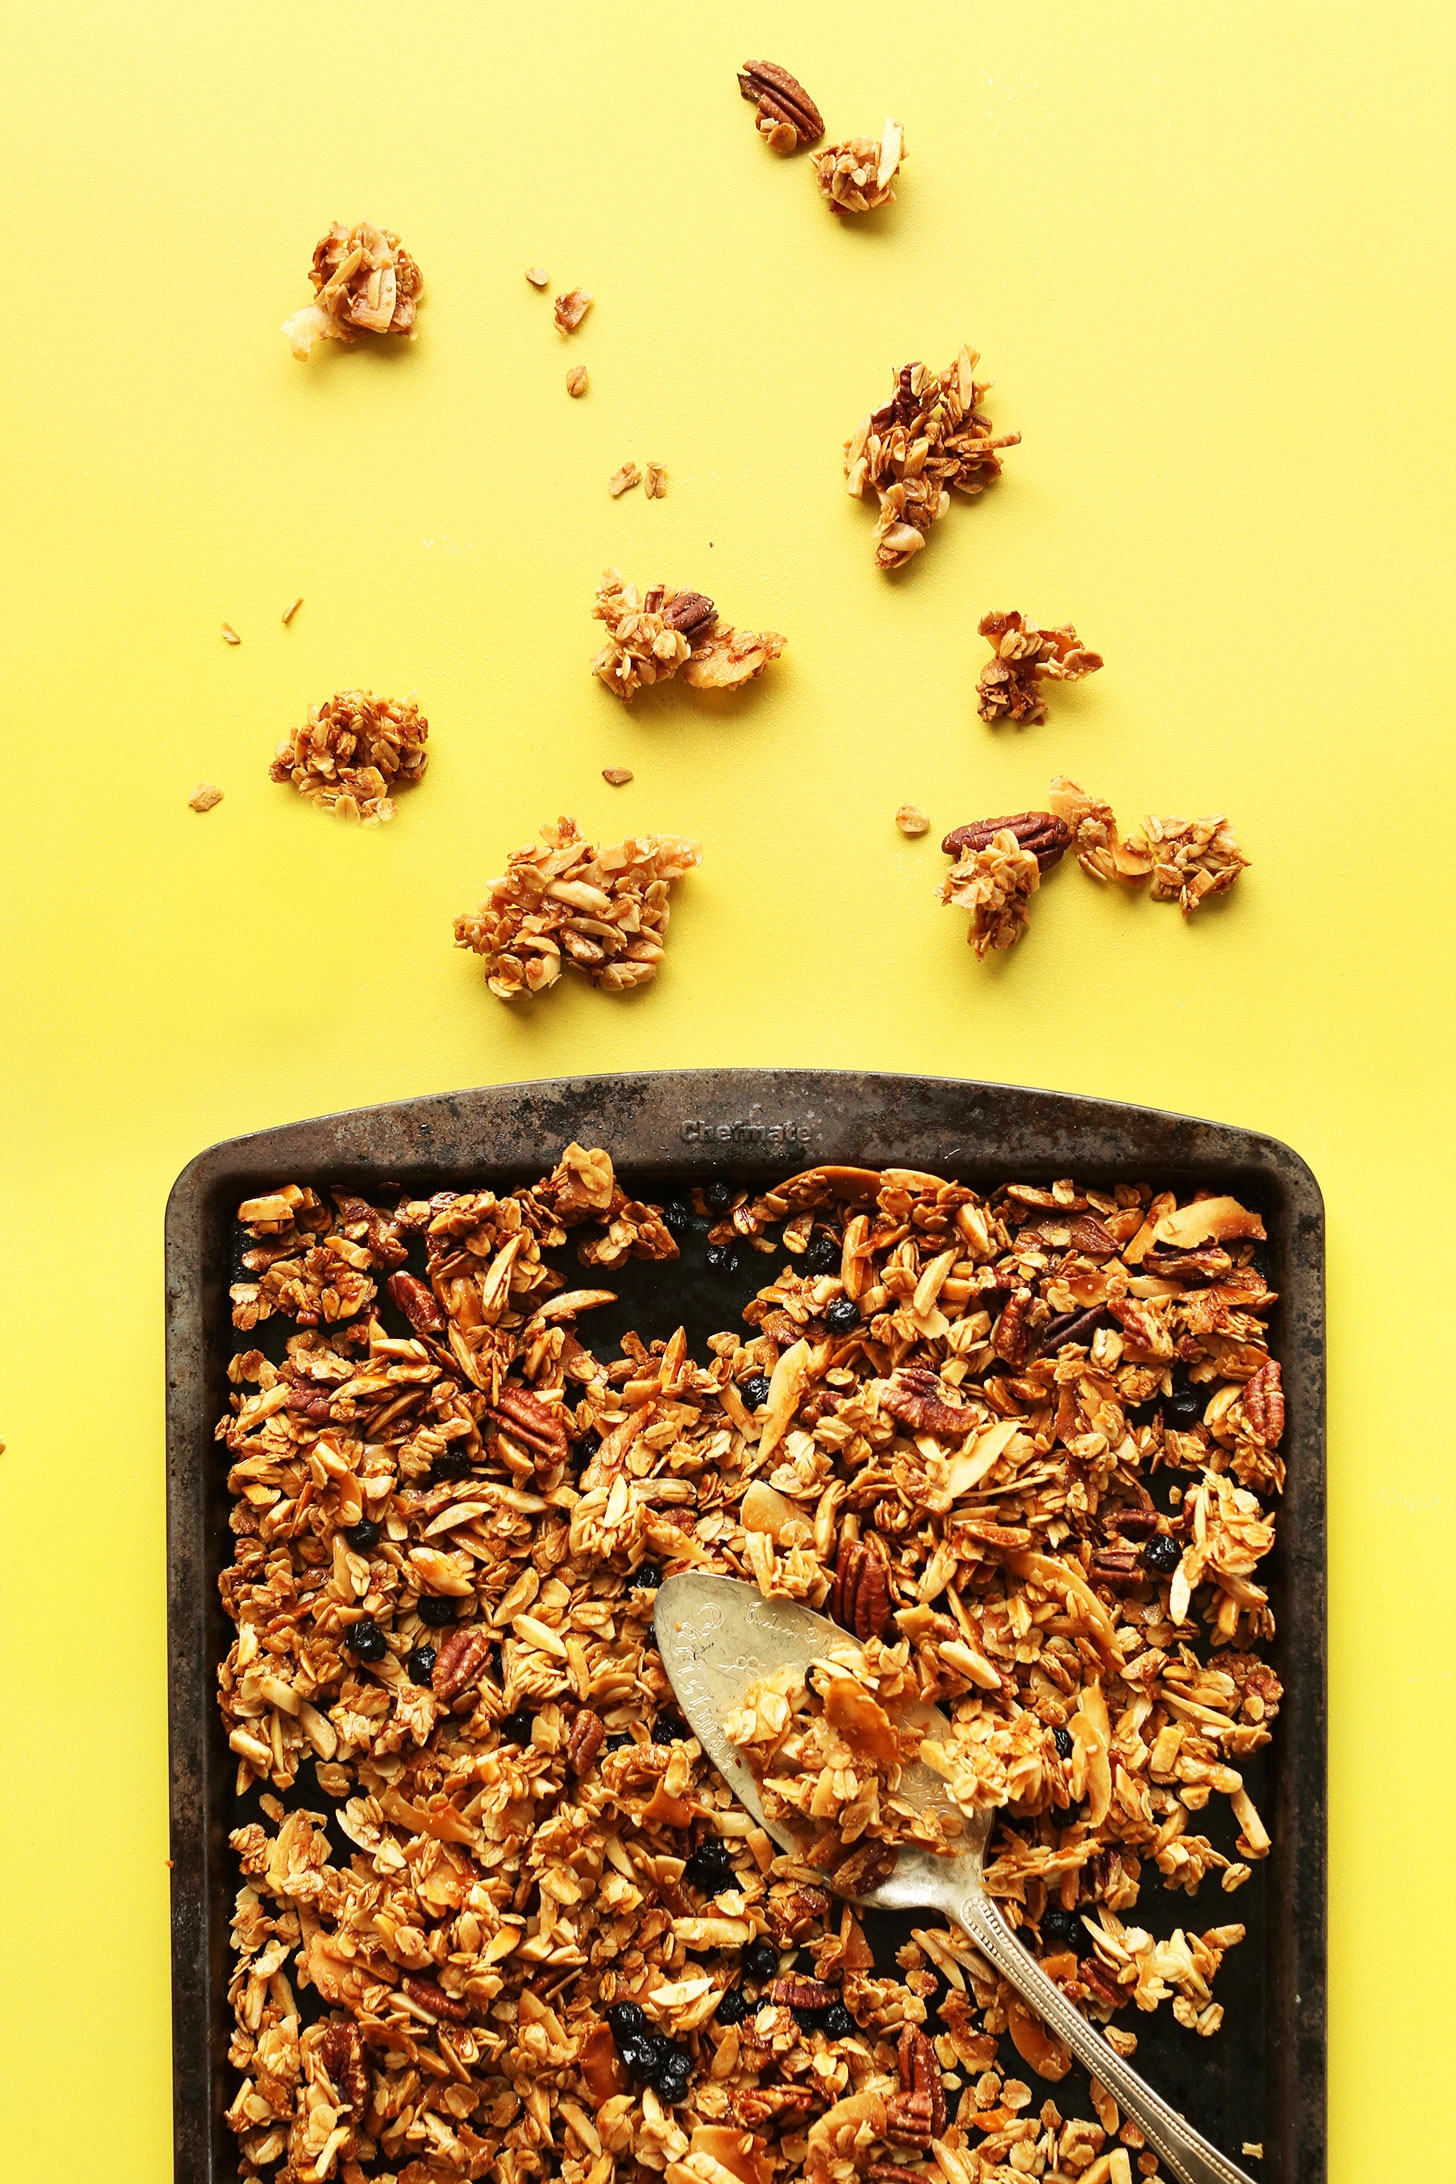 Baking sheet filled with our gluten-free Super Chunky Coconut Granola recipe